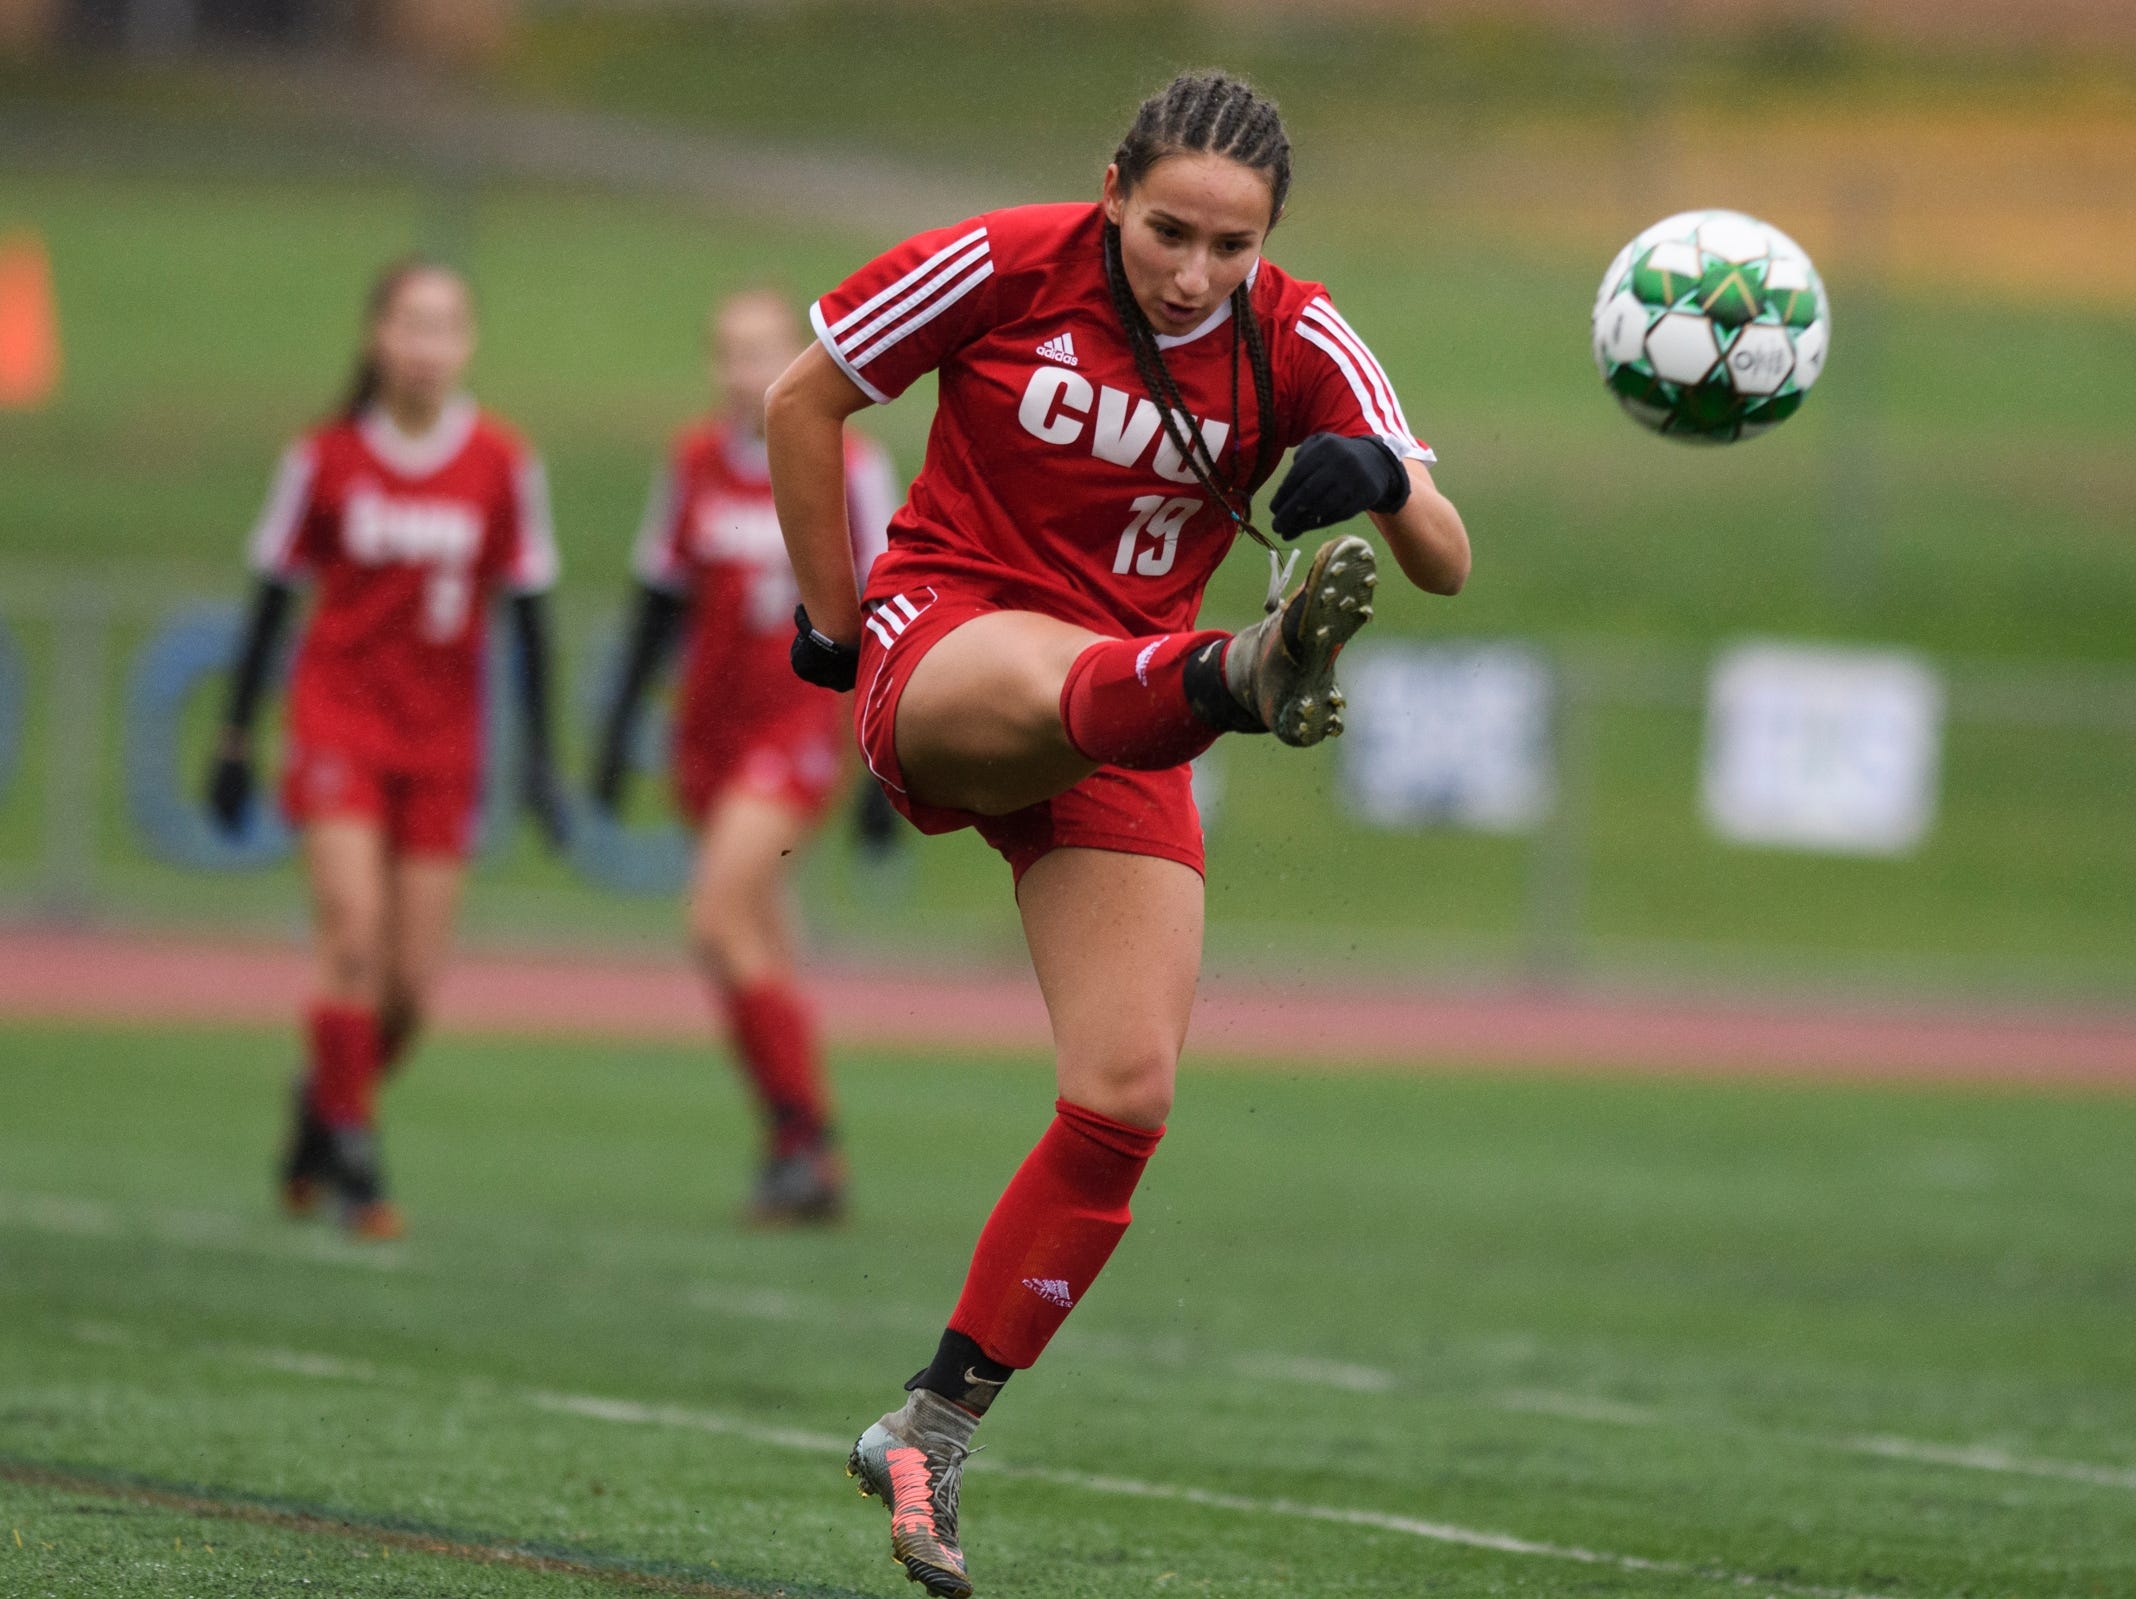 CVU's Sara Kelley (19) plays the ball during the division I girls soccer championship game between the Colchester Lakers and the Champlain Valley Union Redhawks at Buck Hard Field on Saturday morning November 3, 2018 in Burlington.